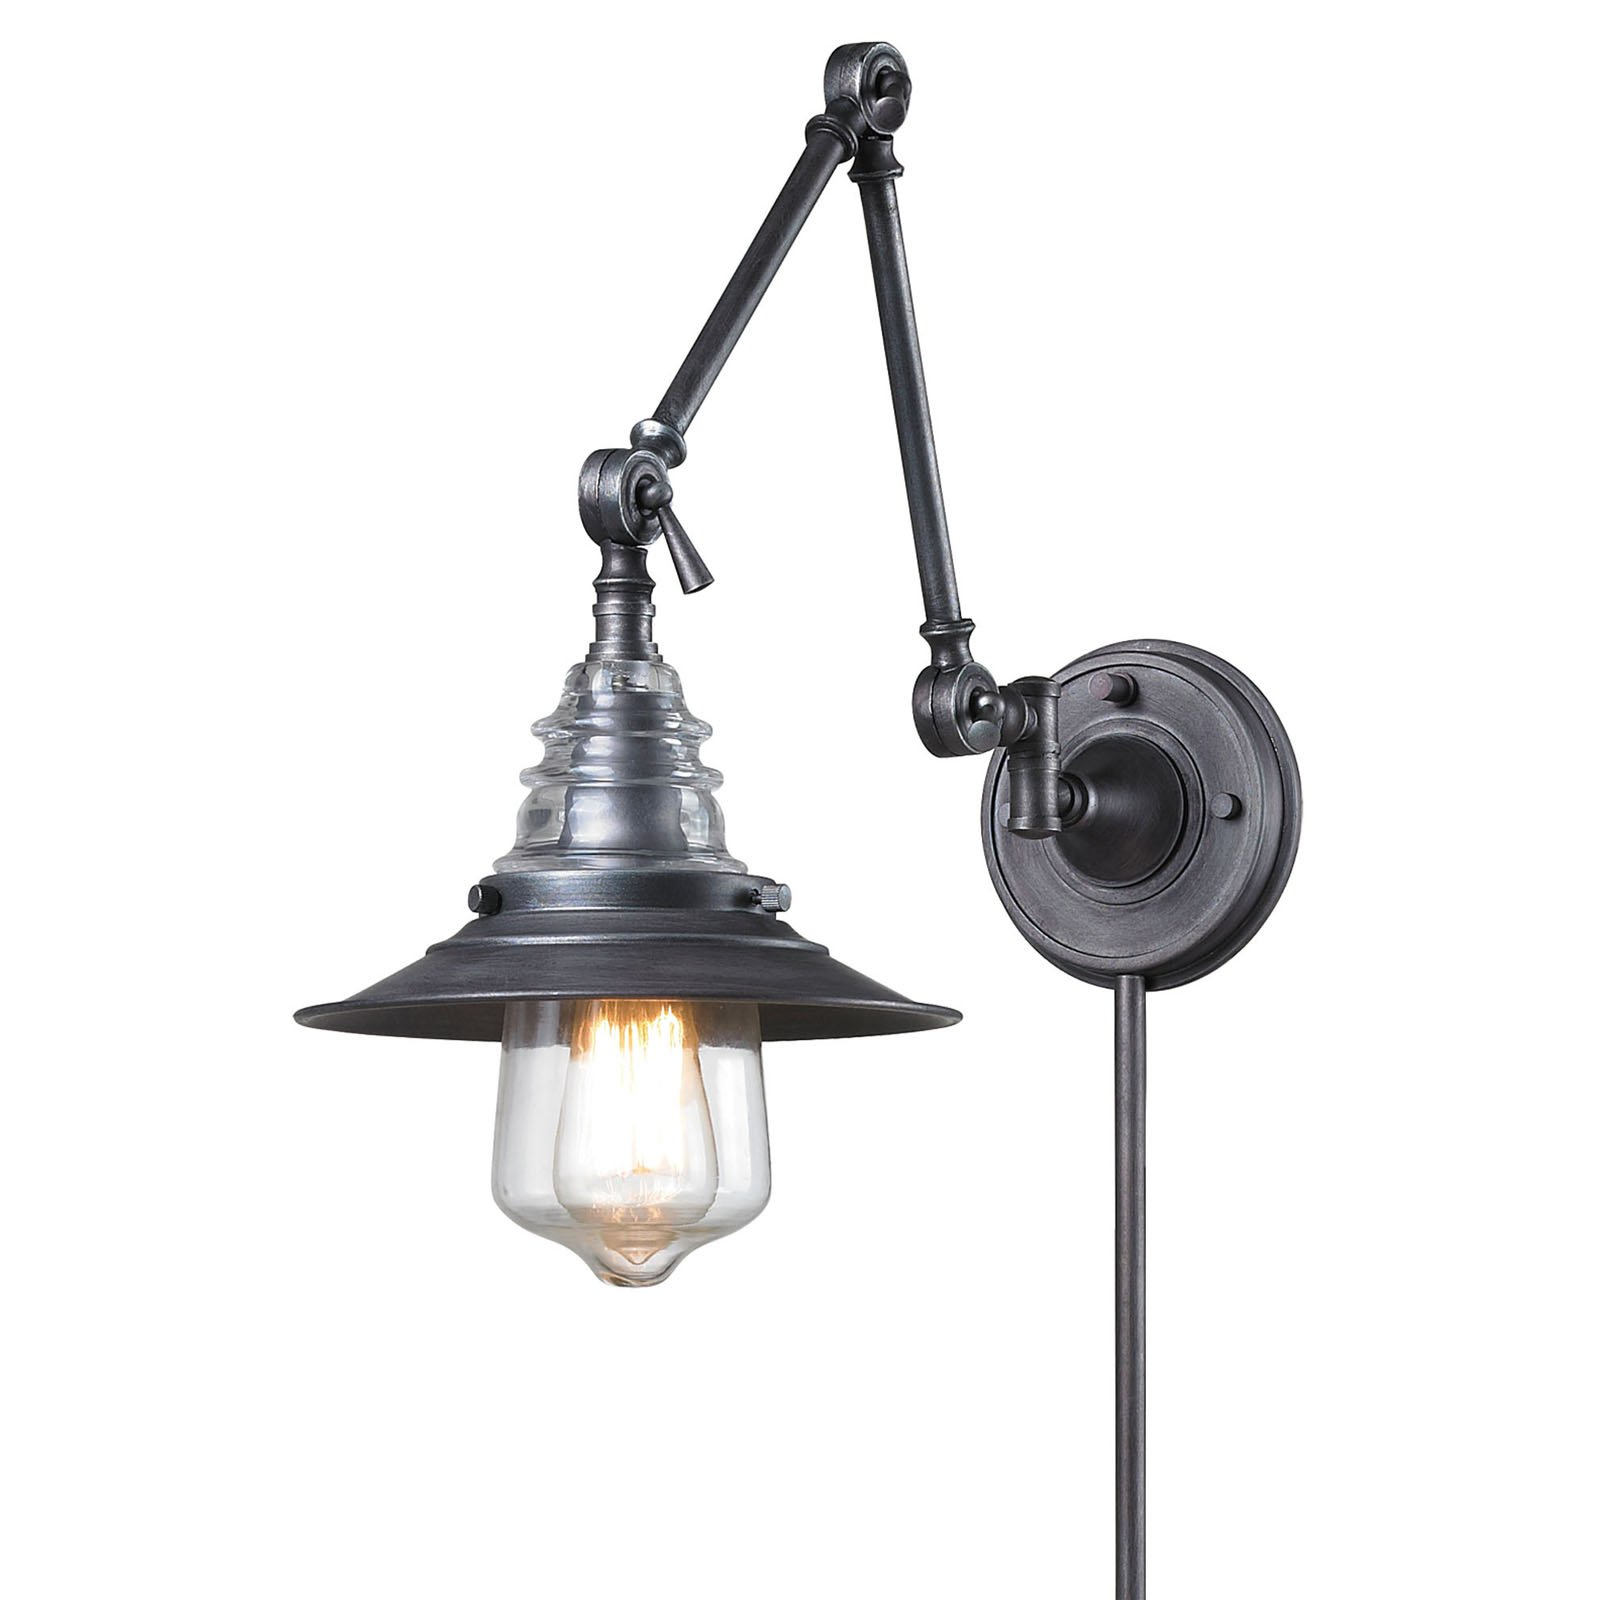 Elk Lighting Insulator Glass 668 Swing Arm Light by Elk Lighting